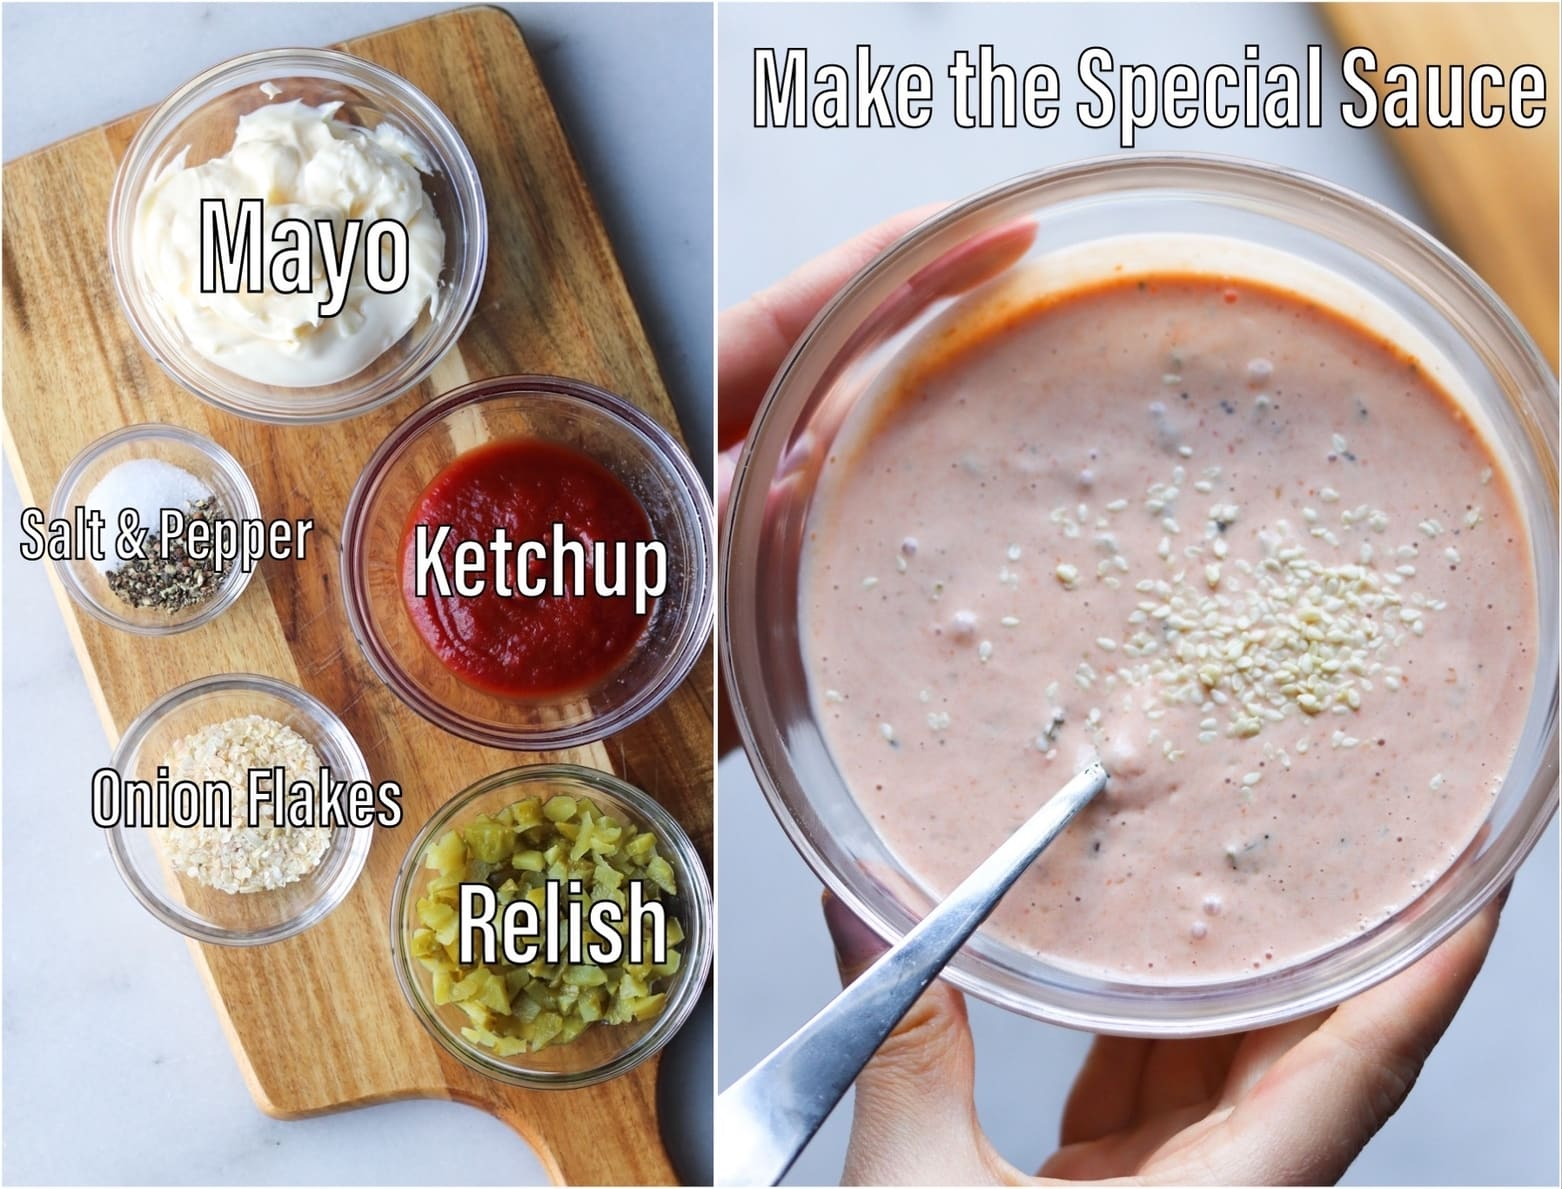 A collage of the special sauce ingredients labeled and laid on a wooden cutting board beside a photo of the finished special sauce in a small white bowl.